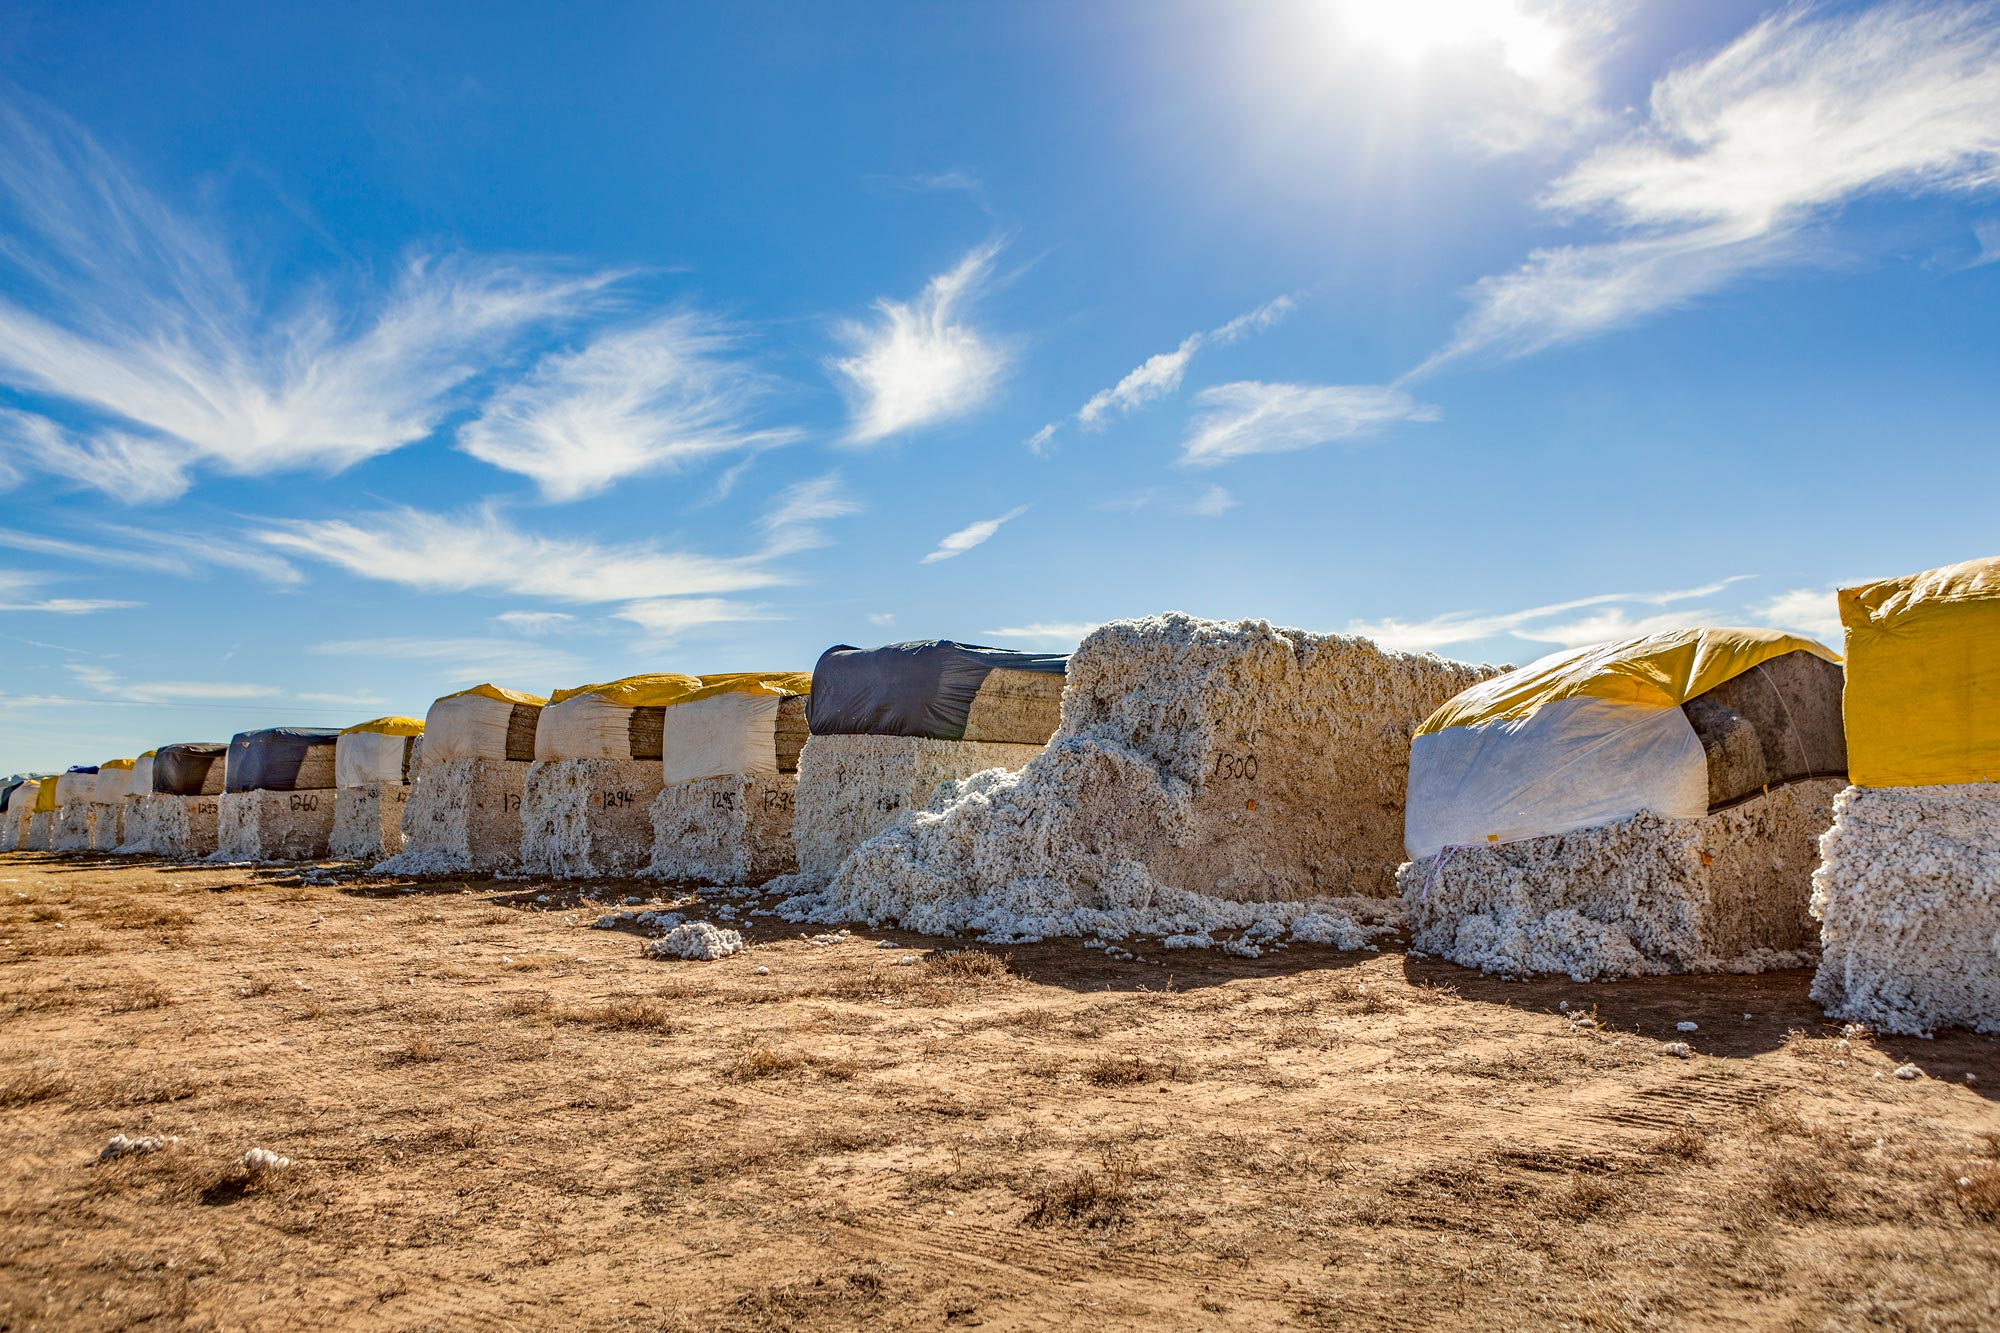 Cotton Bales in the Panhandle, Texas